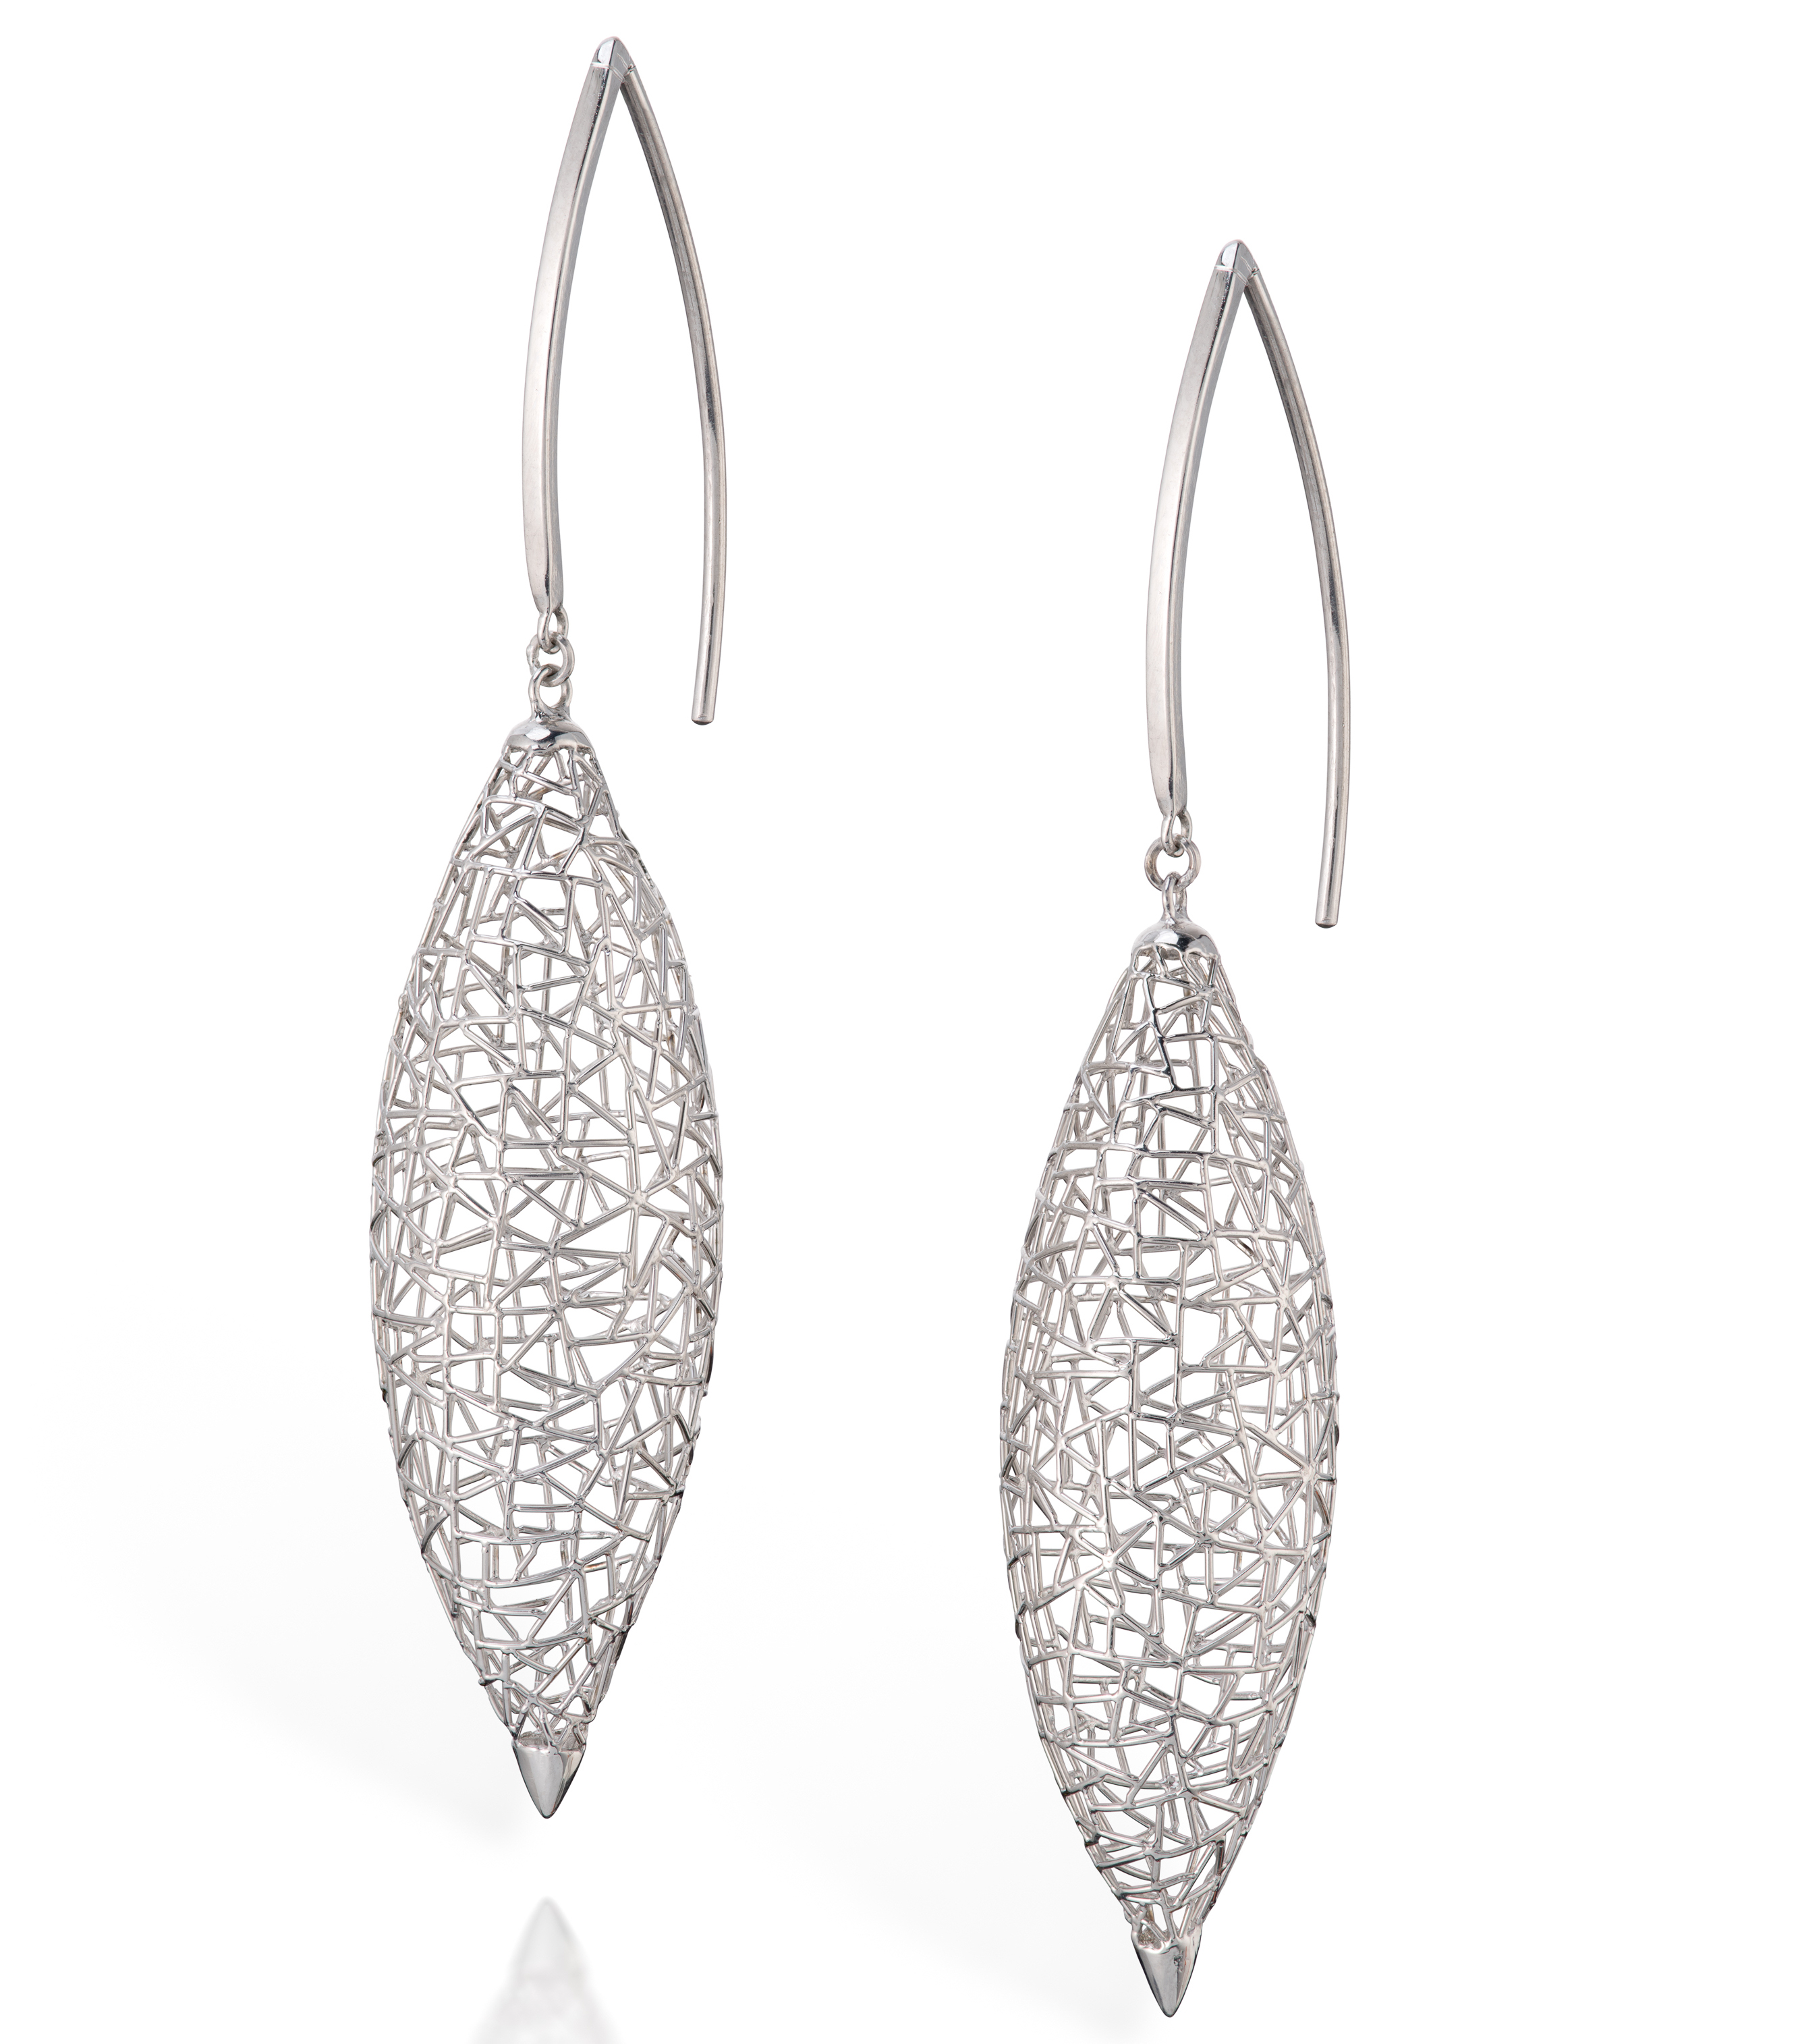 Baiyang Qiu platinum marquise earrings | JCK On Your Market